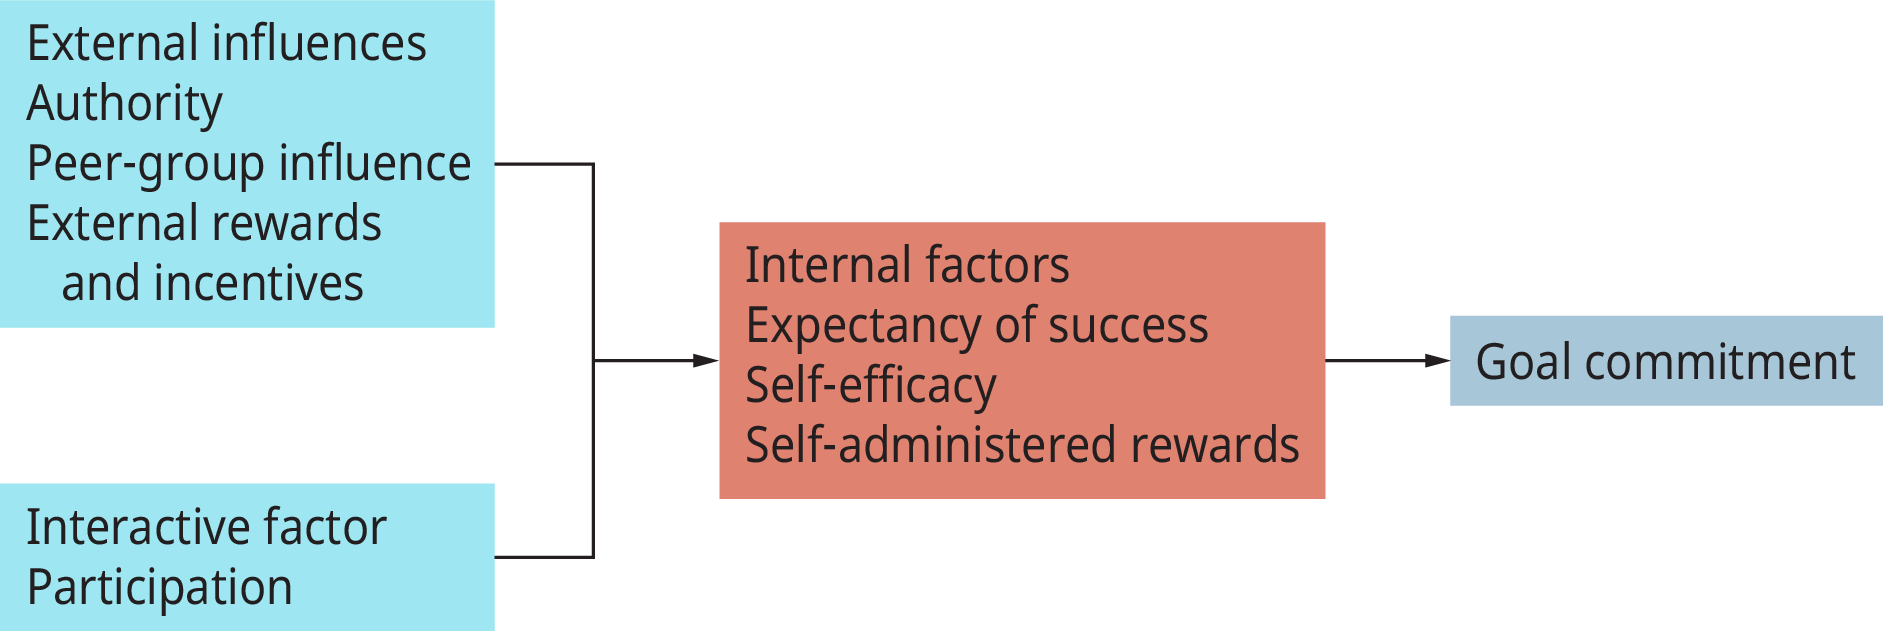 A flow chart shows three sets of factors that facilitate goal commitment.